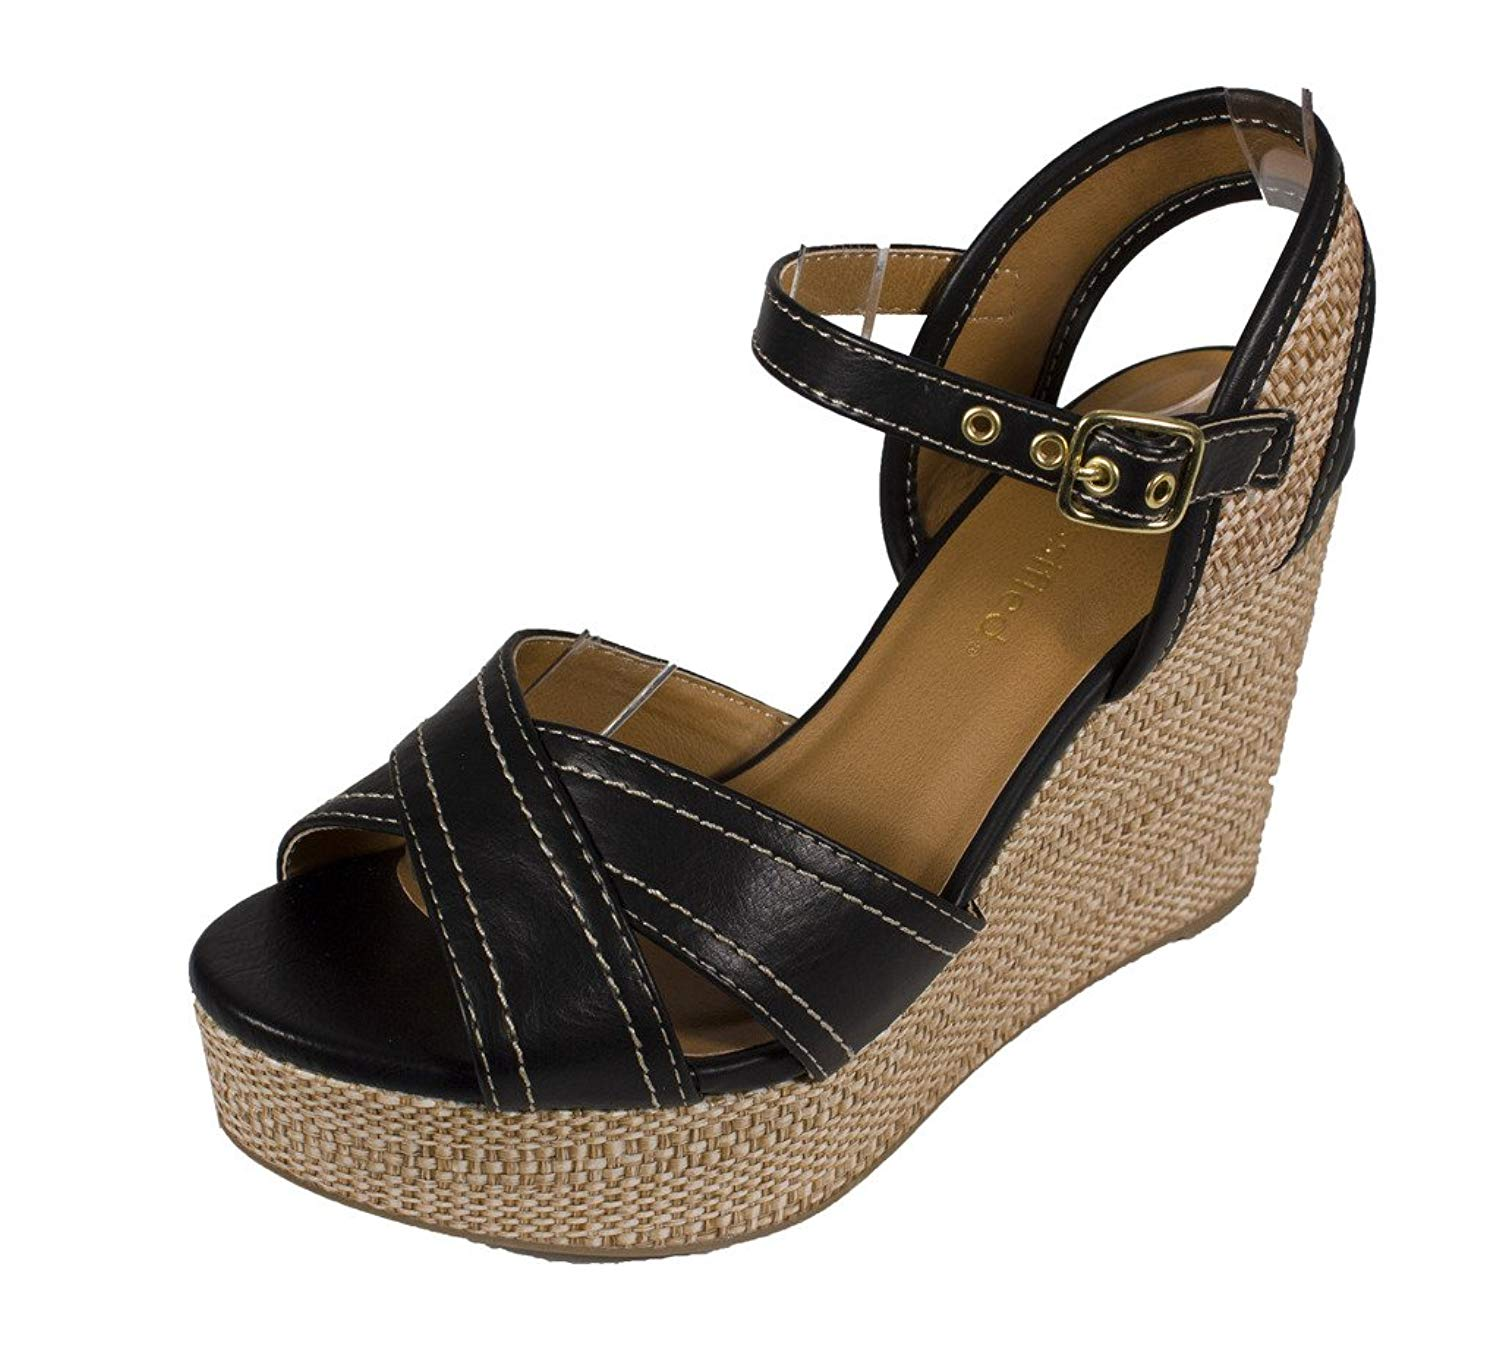 1607647783c62 City Classified Women s Kimball Ankle Strap Platform Raffia Wedge Sandal in  Black Leatherette